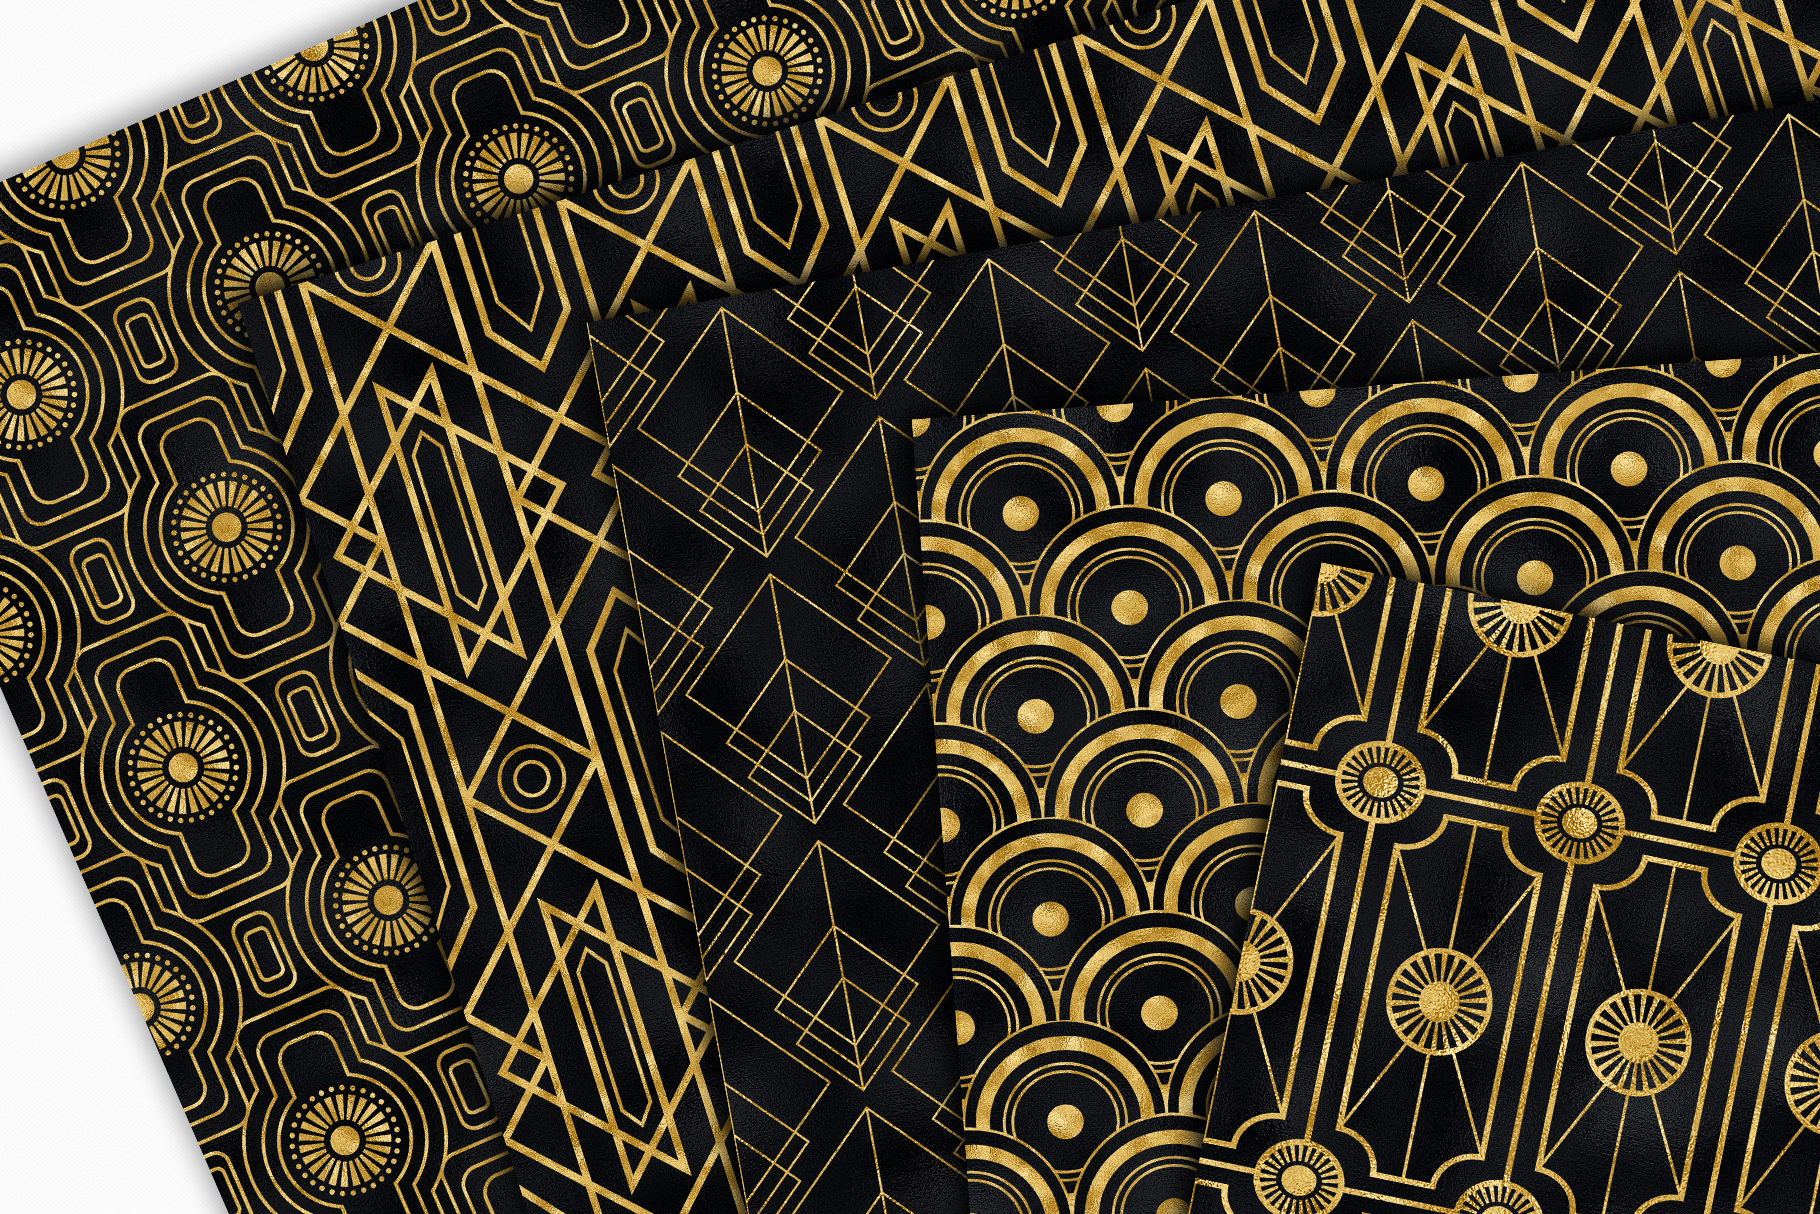 Seamless Art Deco Patterns - Black and Gold Digital Papers example image 9